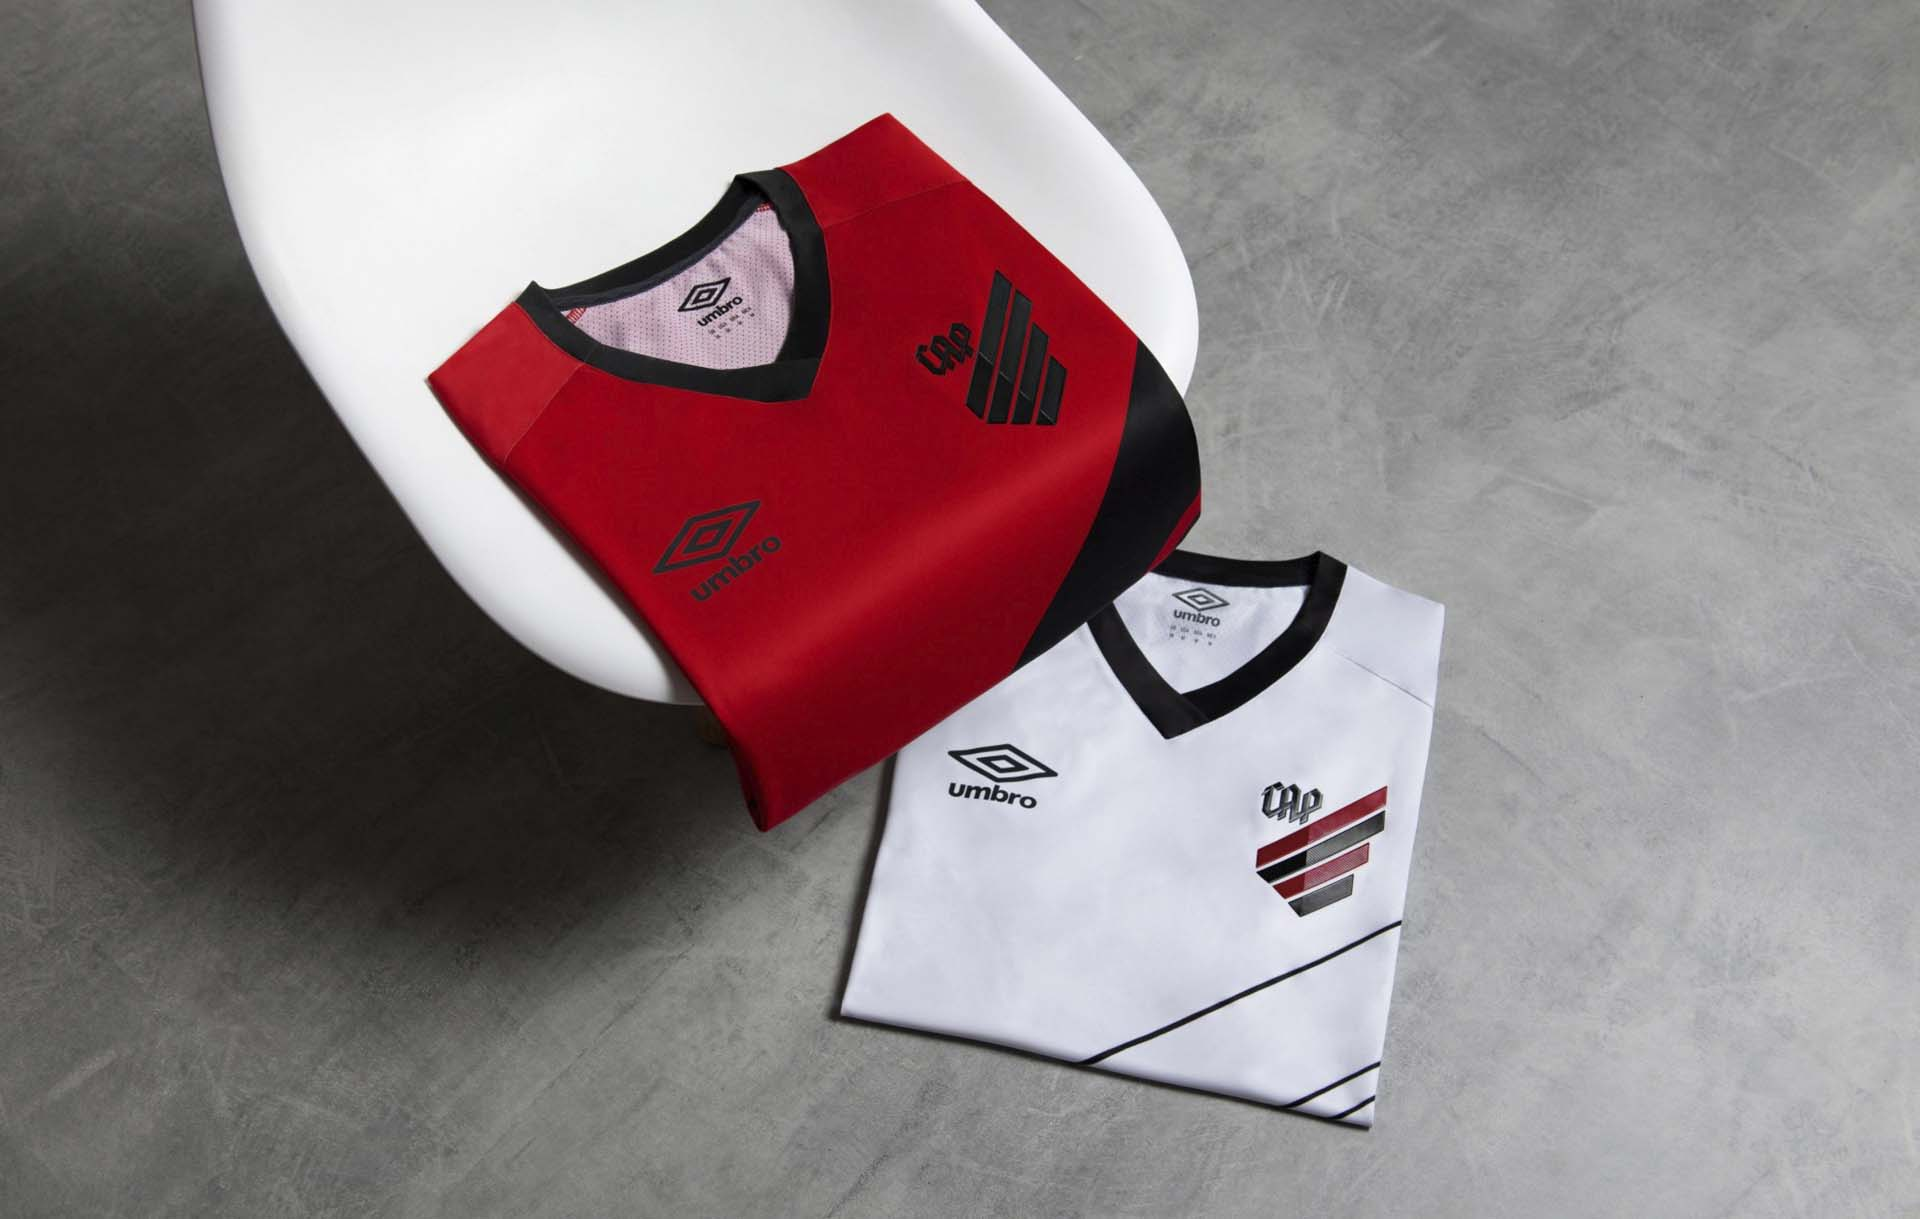 0ca1934478b 2-umbro-paranaese-18-19.jpg. The 2019 home and away shirts for Athletico ...